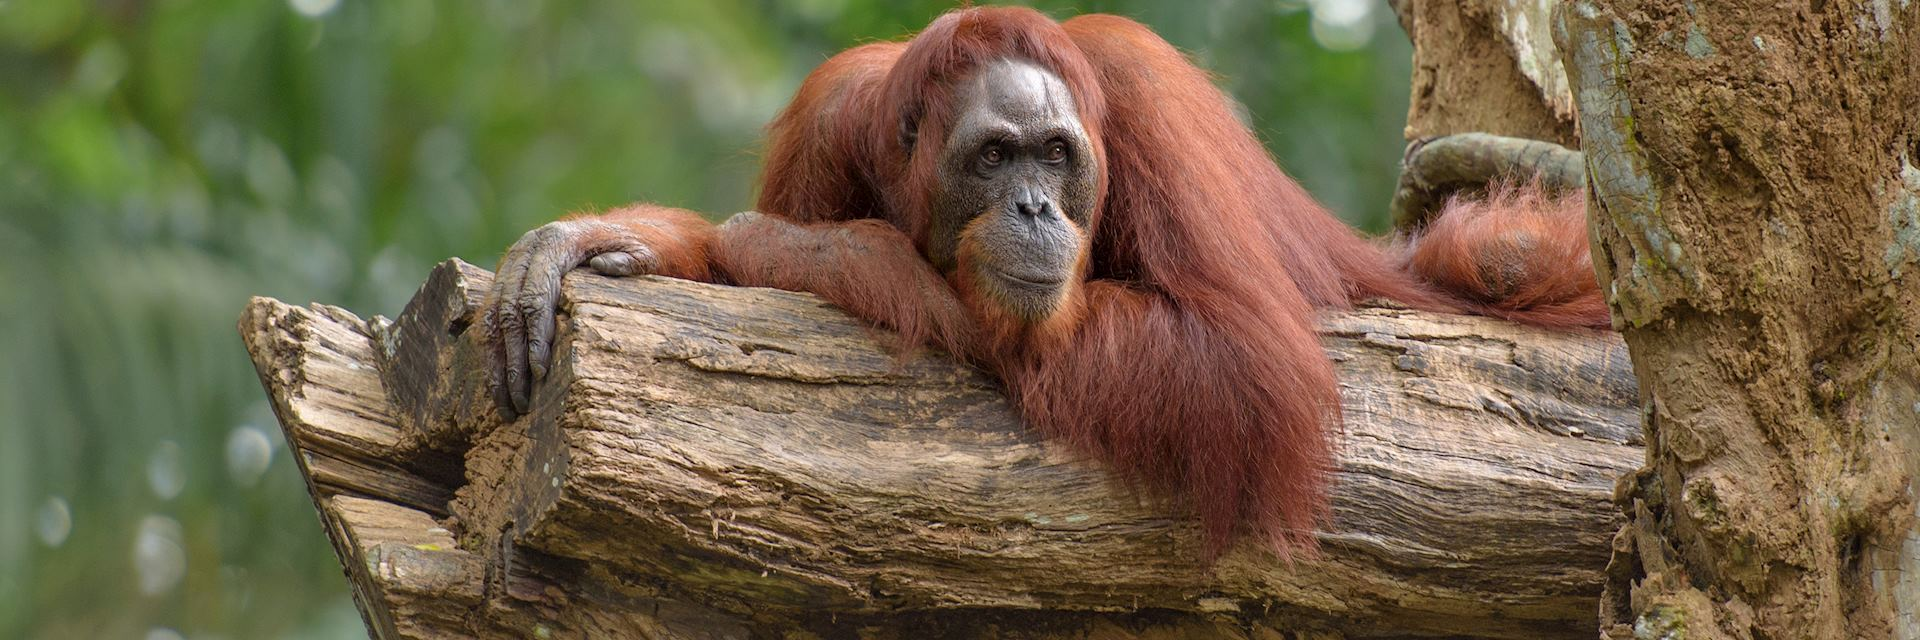 Male orangutan in the Tabin Wildlife Reserve